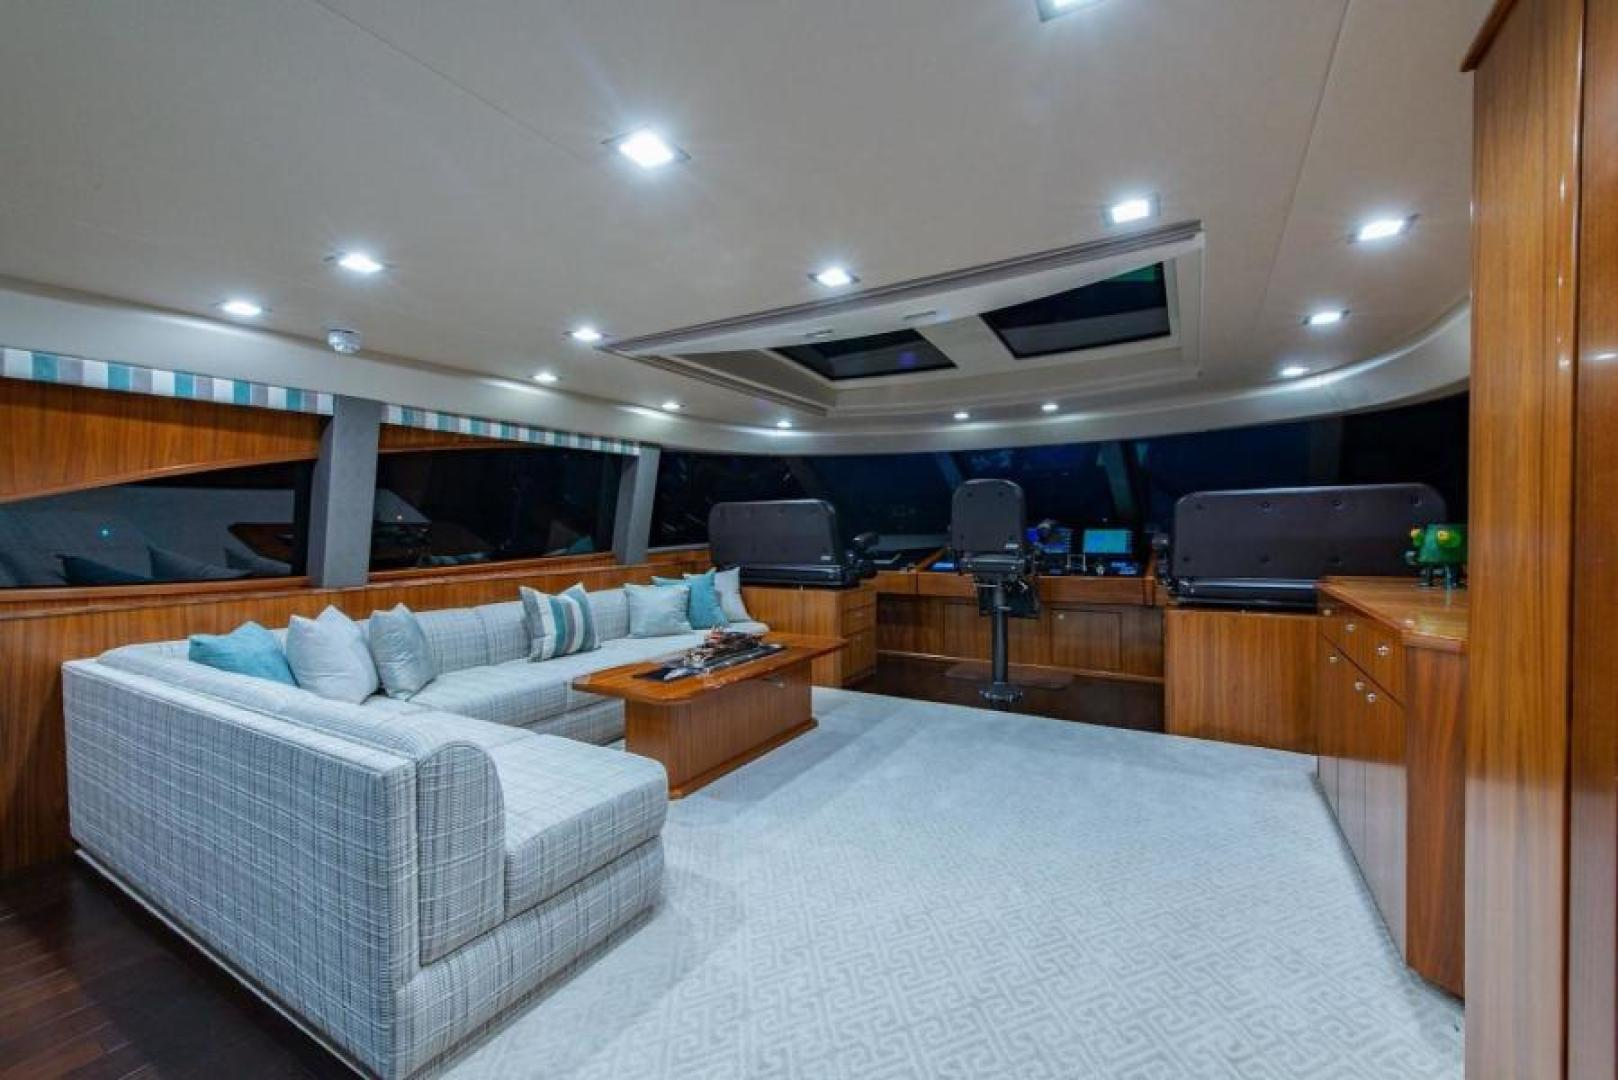 Viking-Motoryacht Enclosed Flybridge 2018-BOOK ENDS Fort Lauderdale-Florida-United States-Enclosed Flybridge-1470626 | Thumbnail